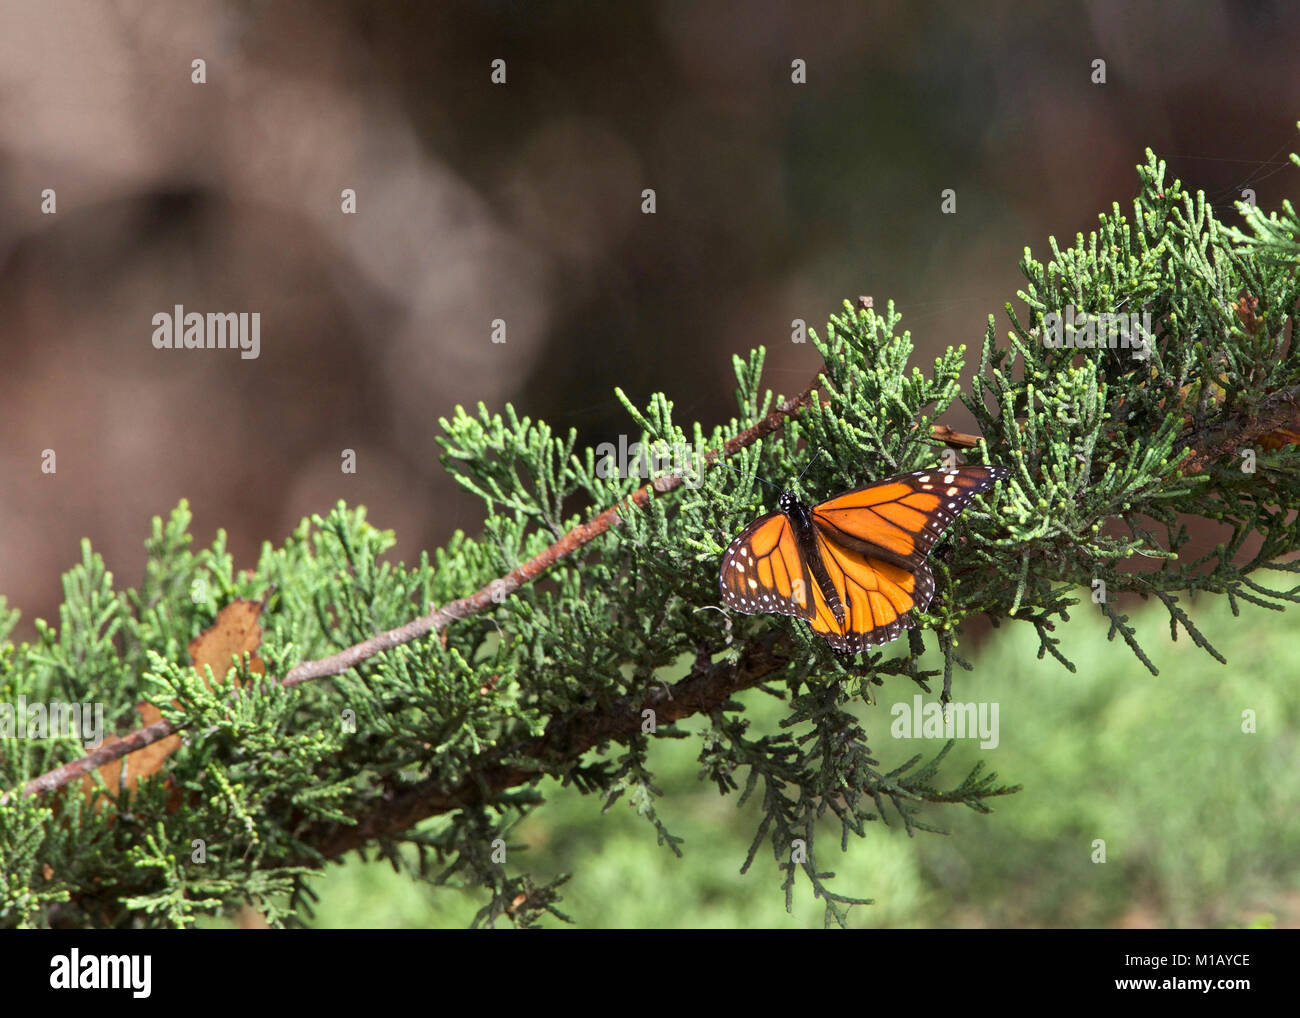 Monarch Butterfly in a pine tree. The monarch butterfly may be the most familiar North American butterfly and an - Stock Image